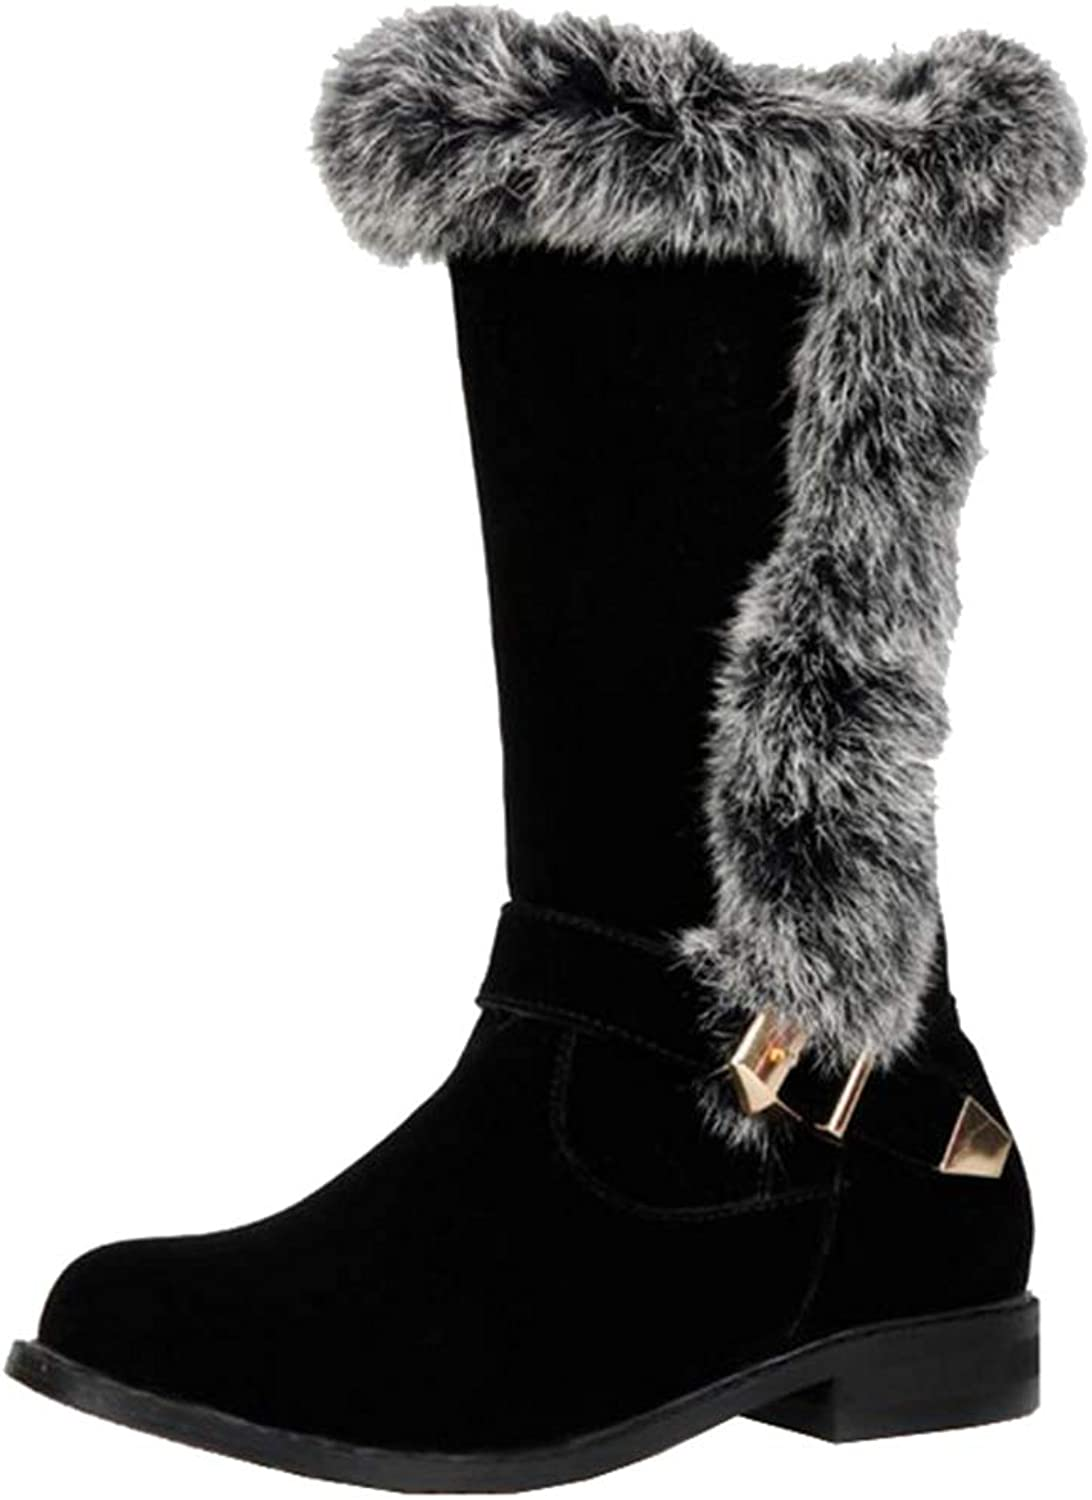 Smilice Women Mid-Calf Winter Boots